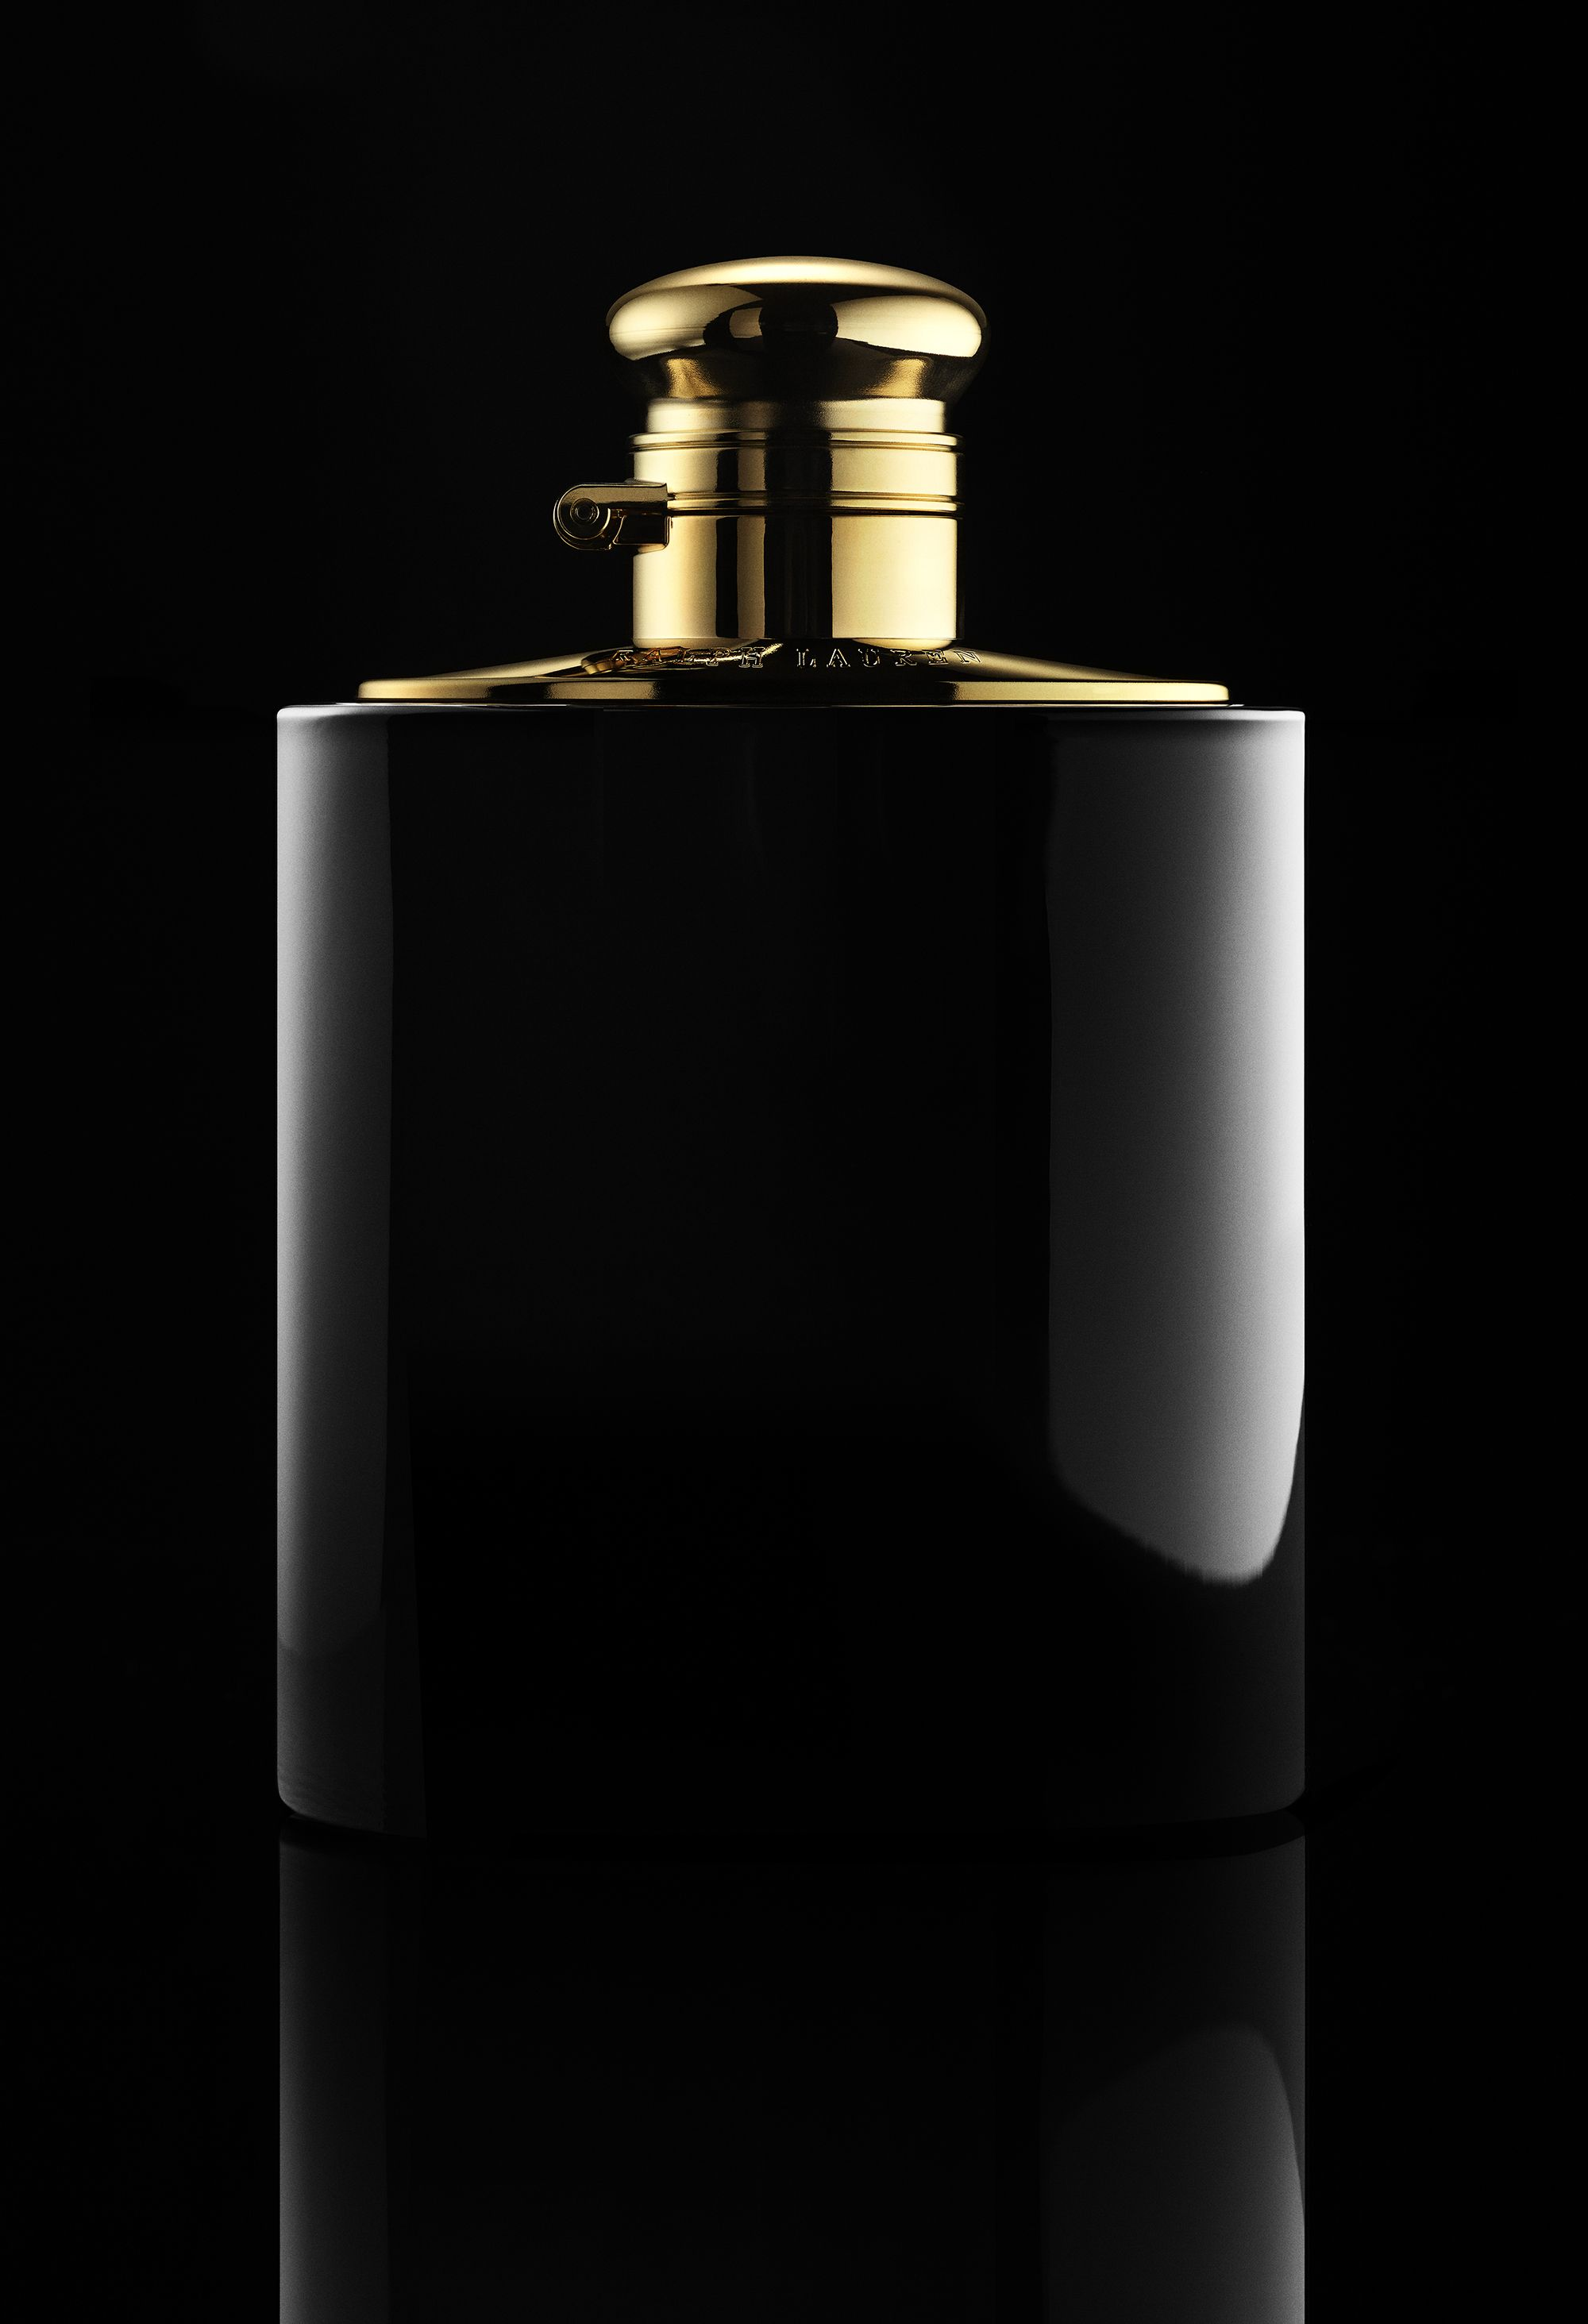 Ralph Lauren Fragrance's LatestL Woman Intense Eau de Parfum.